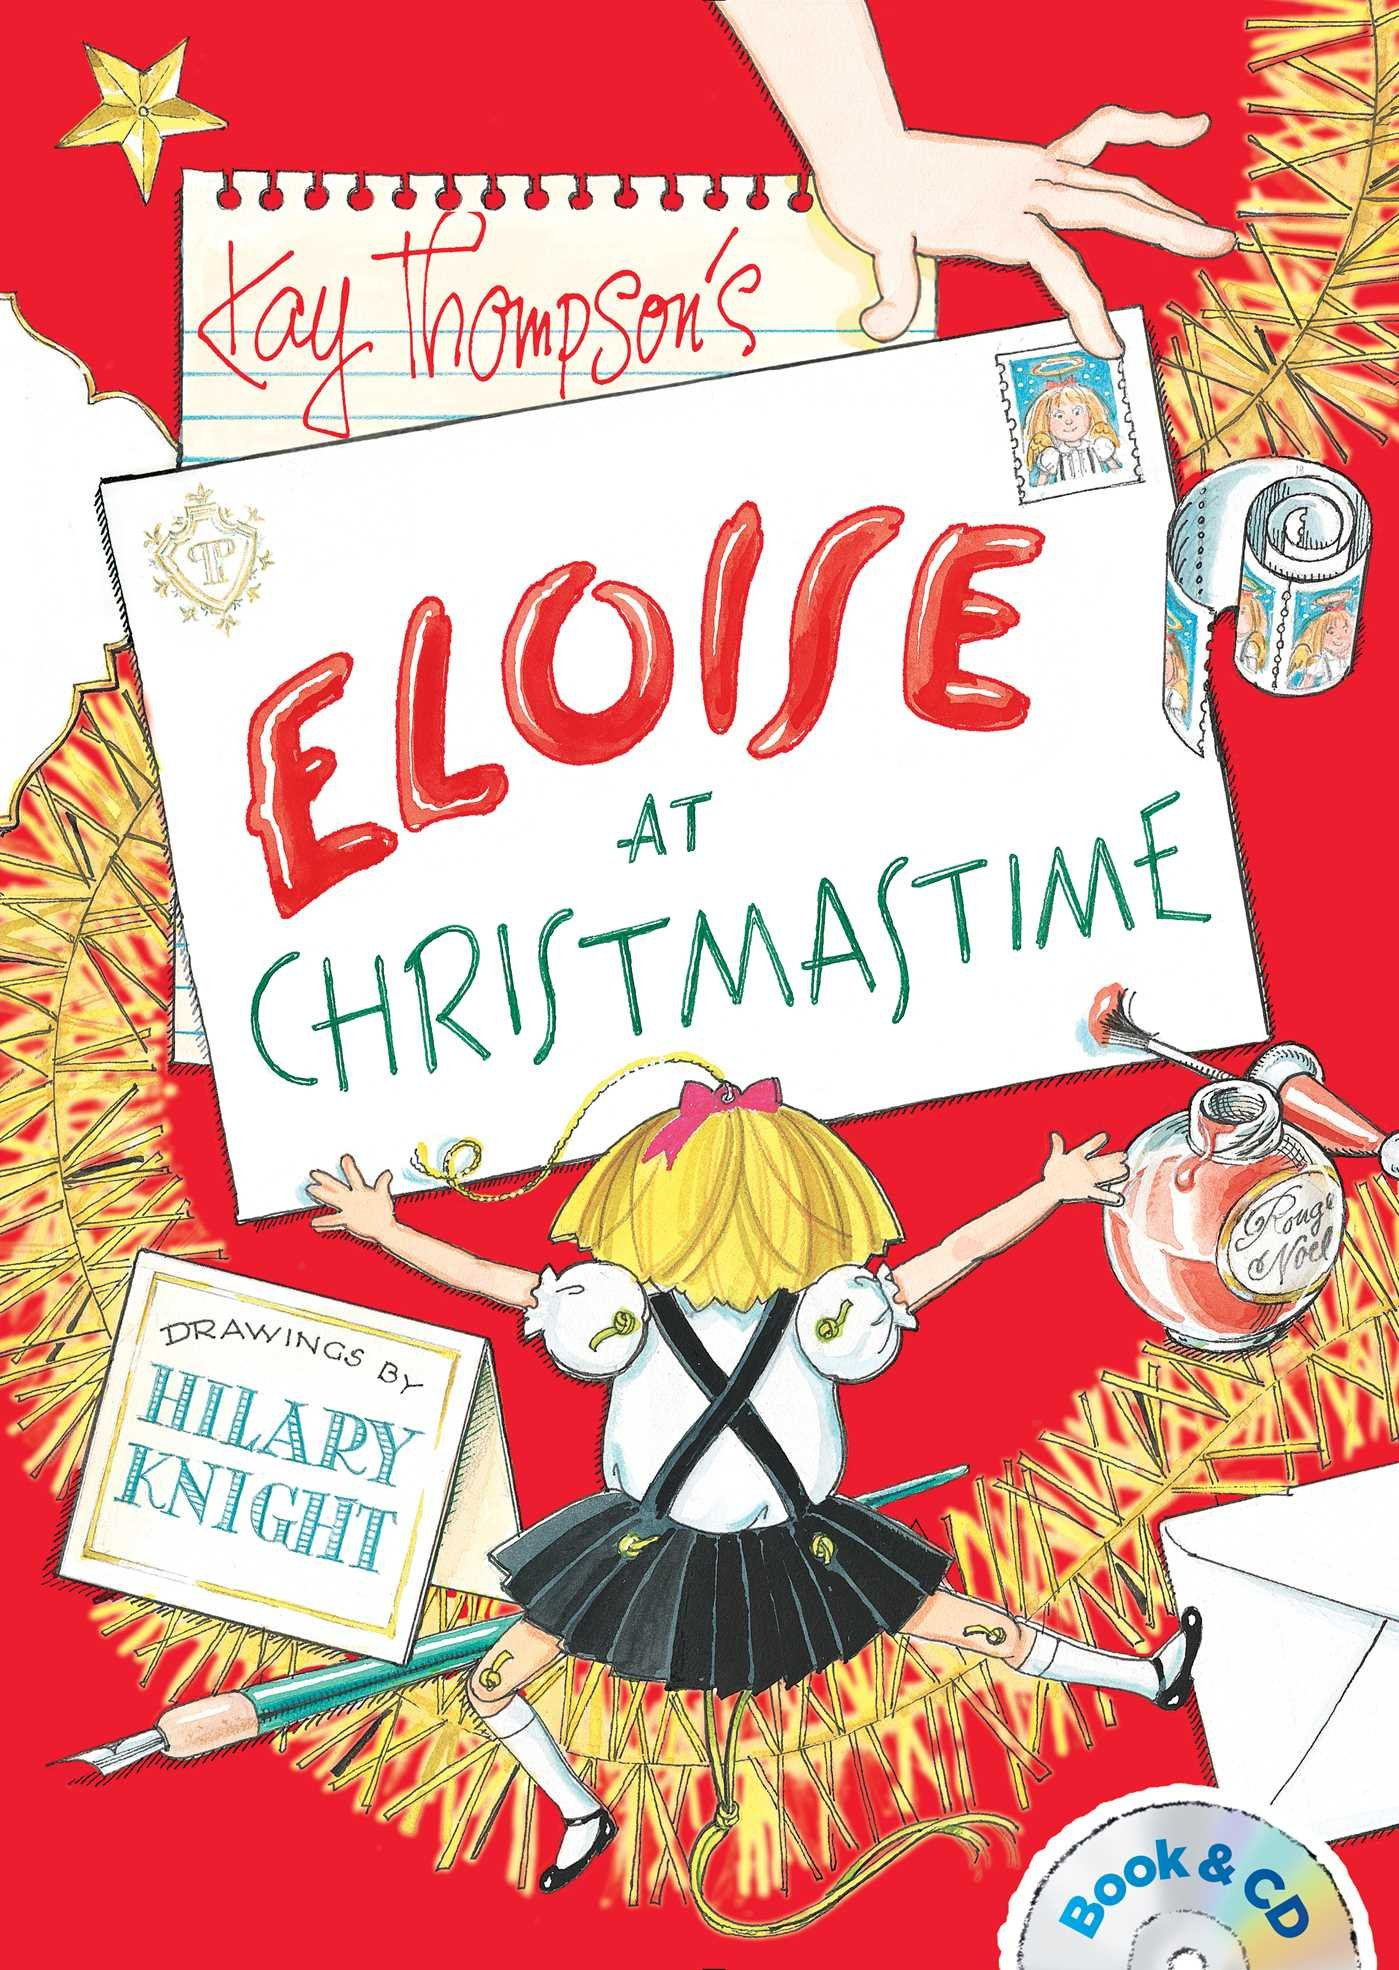 Eloise at Christmastime: Book & CD: Kay Thompson, Hilary Knight ...